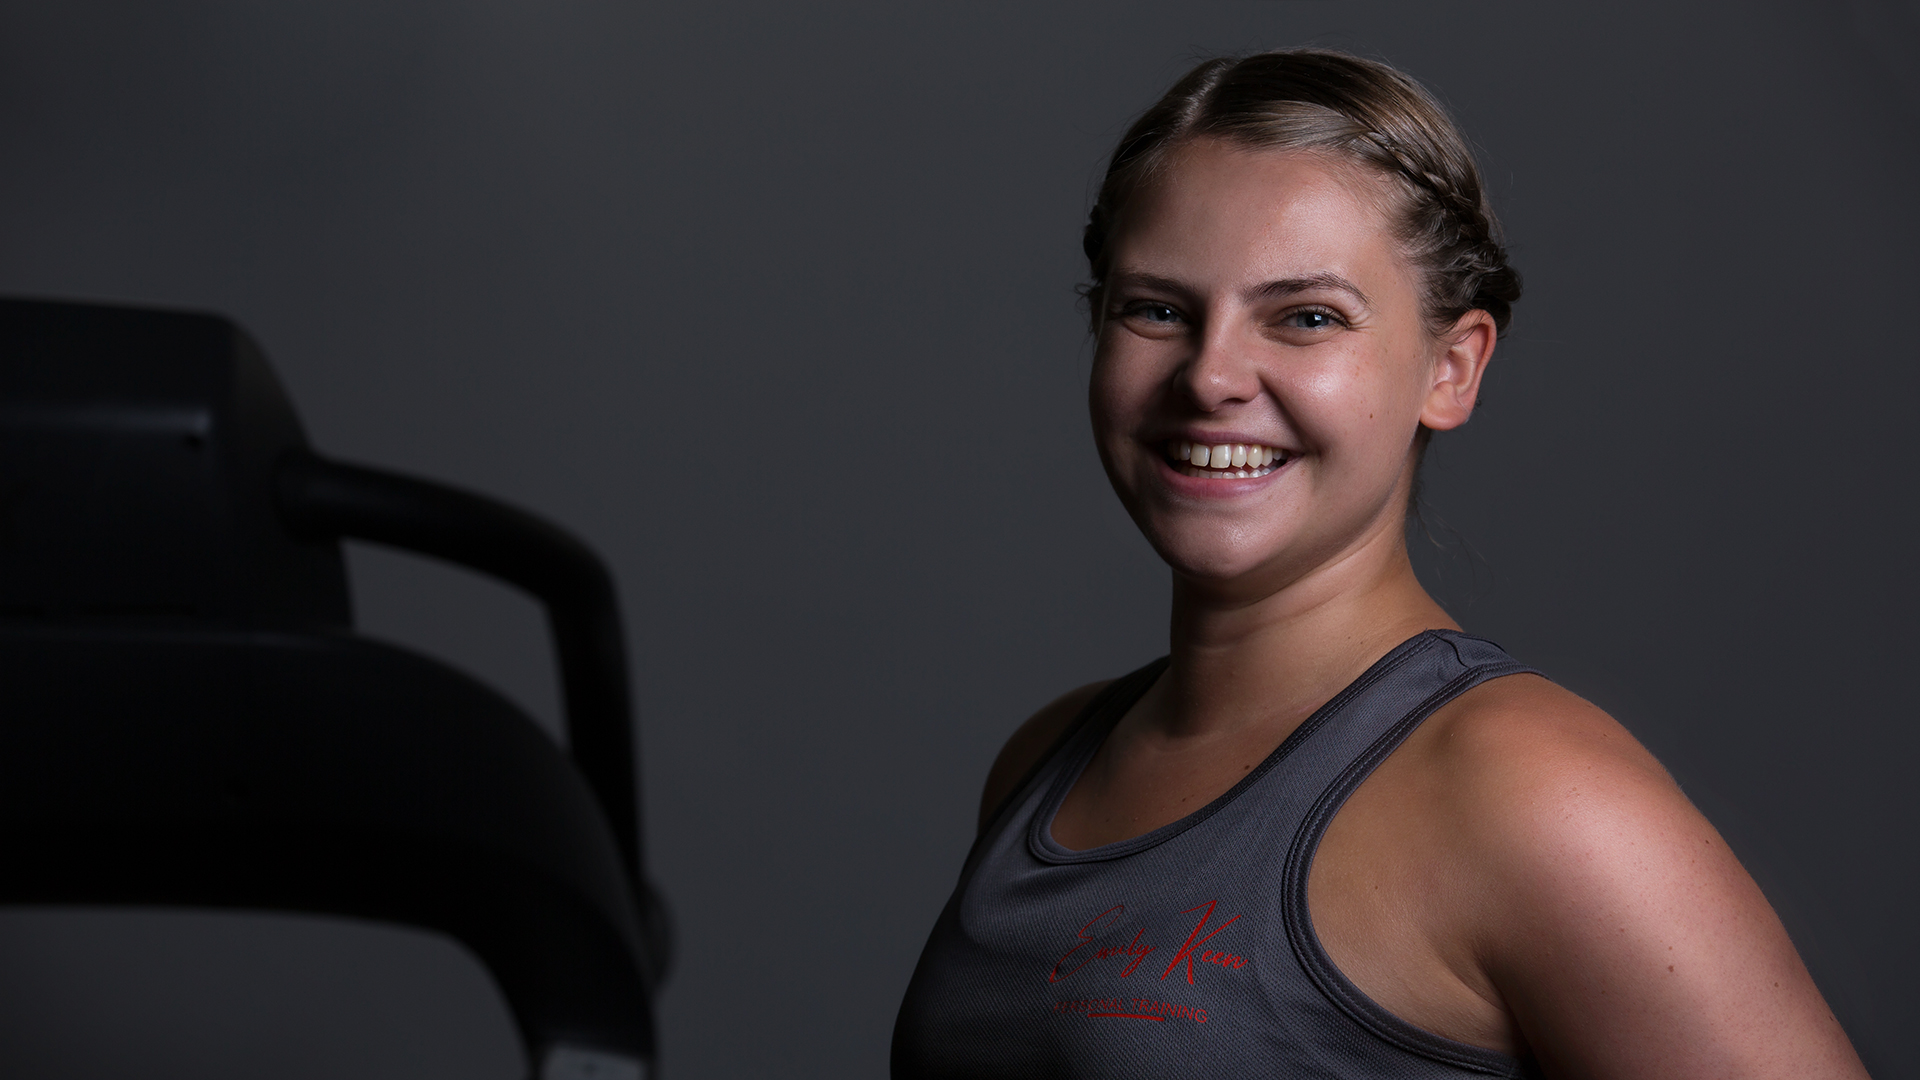 Emily Keen Personal Training - Based in Plymouth